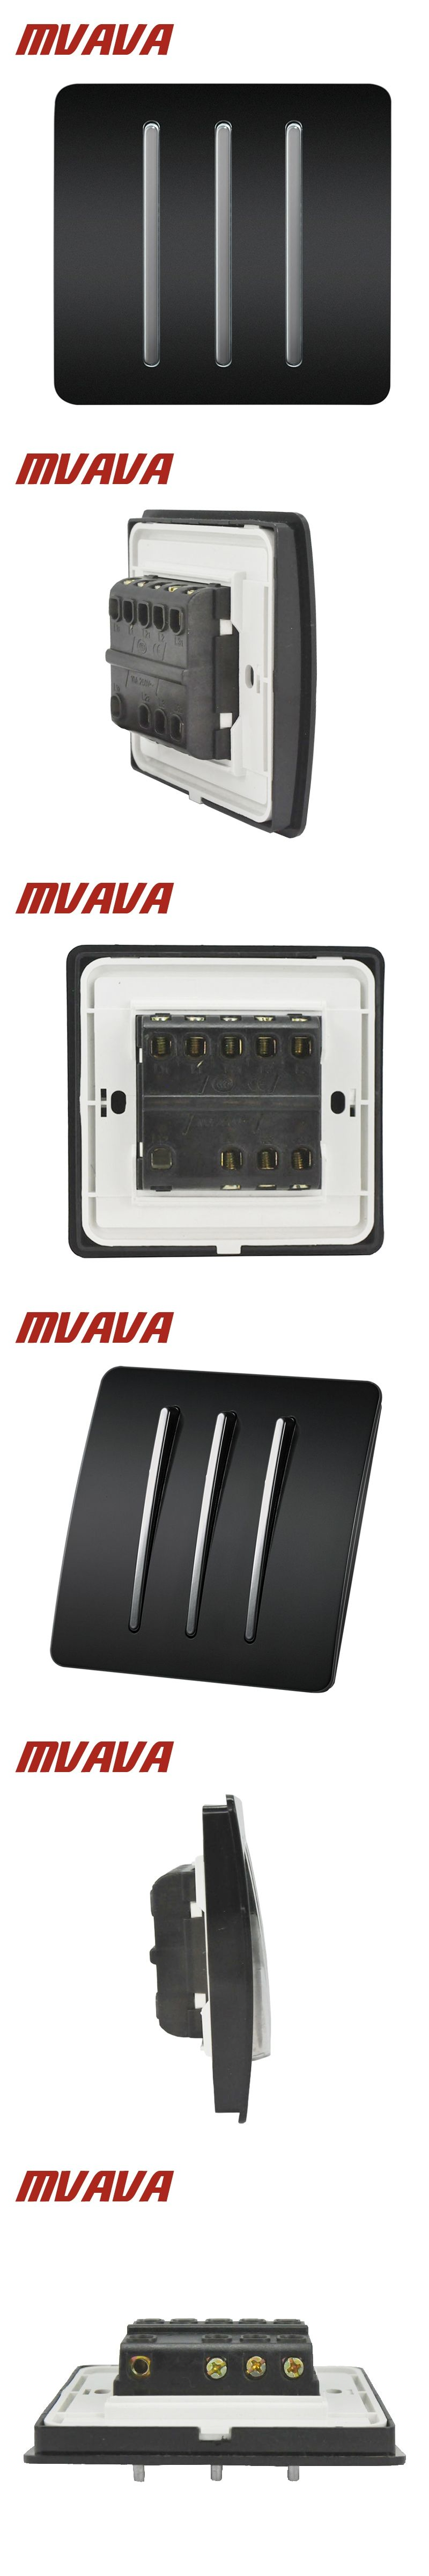 Mvava Electric Key Push Button Light Control Switch 3 Gang 2 Way Battery 250v 220v Wall Switches